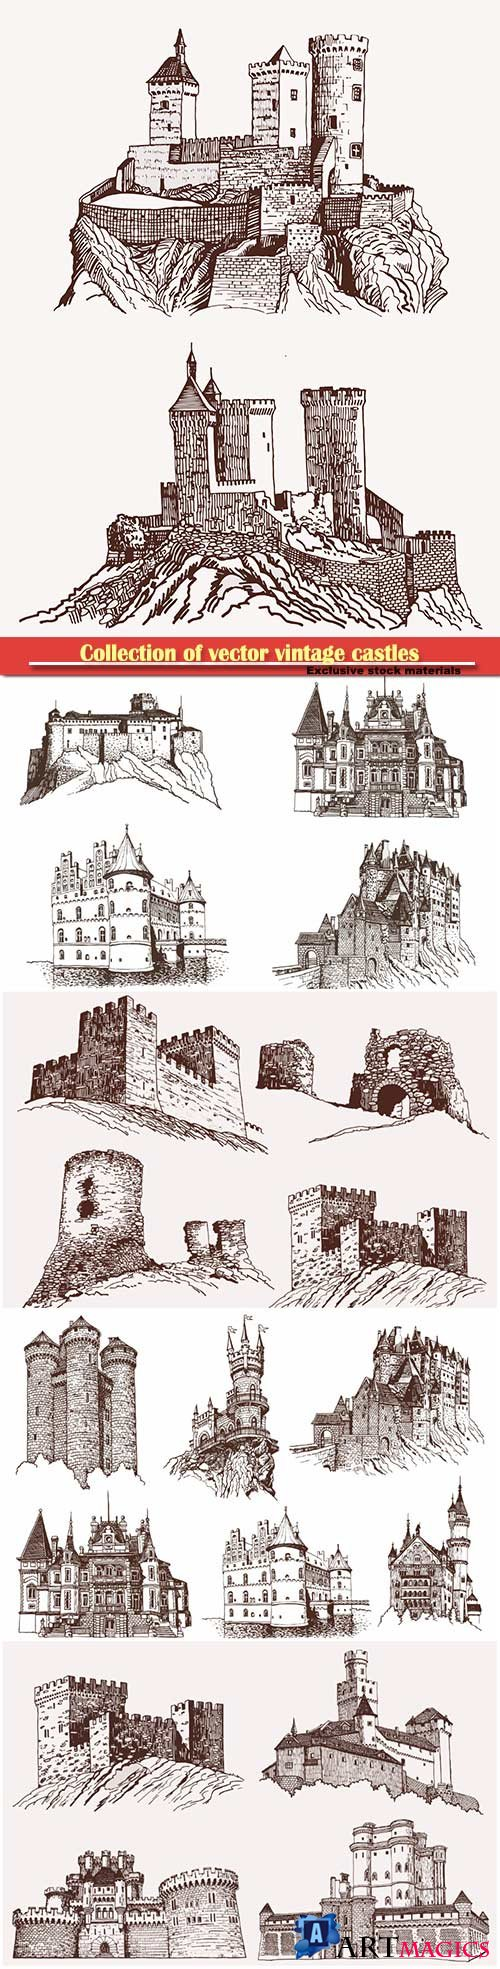 Collection of vector vintage castles